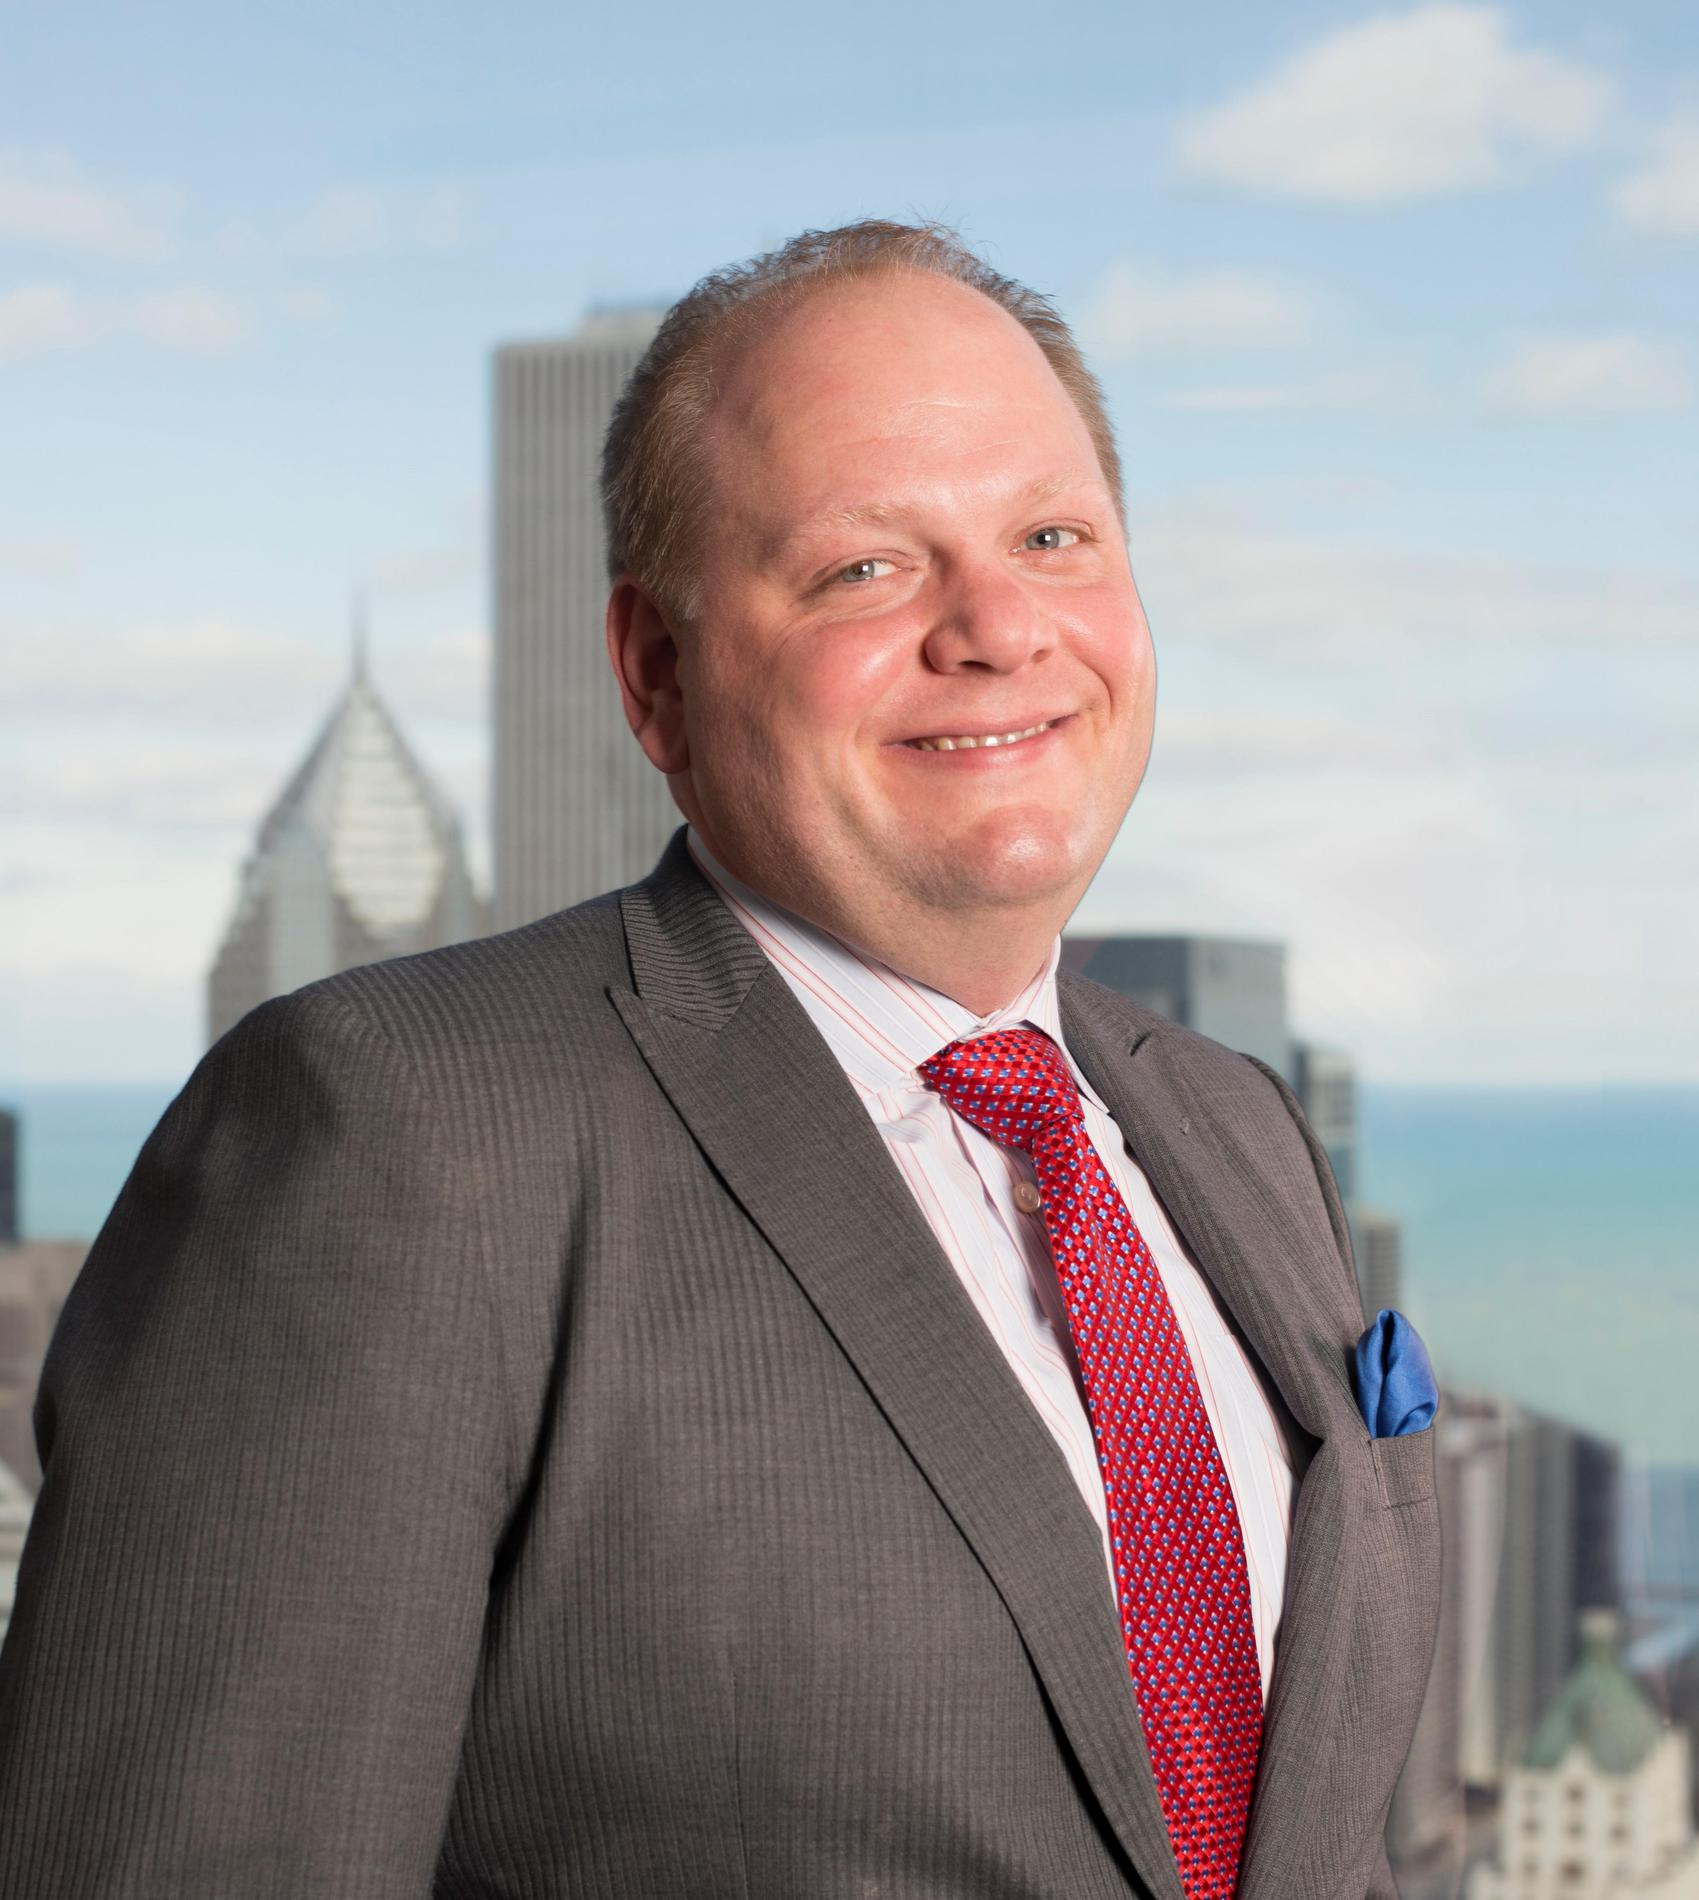 Shawn M Reed Chicago Il Morgan Stanley Wealth Management